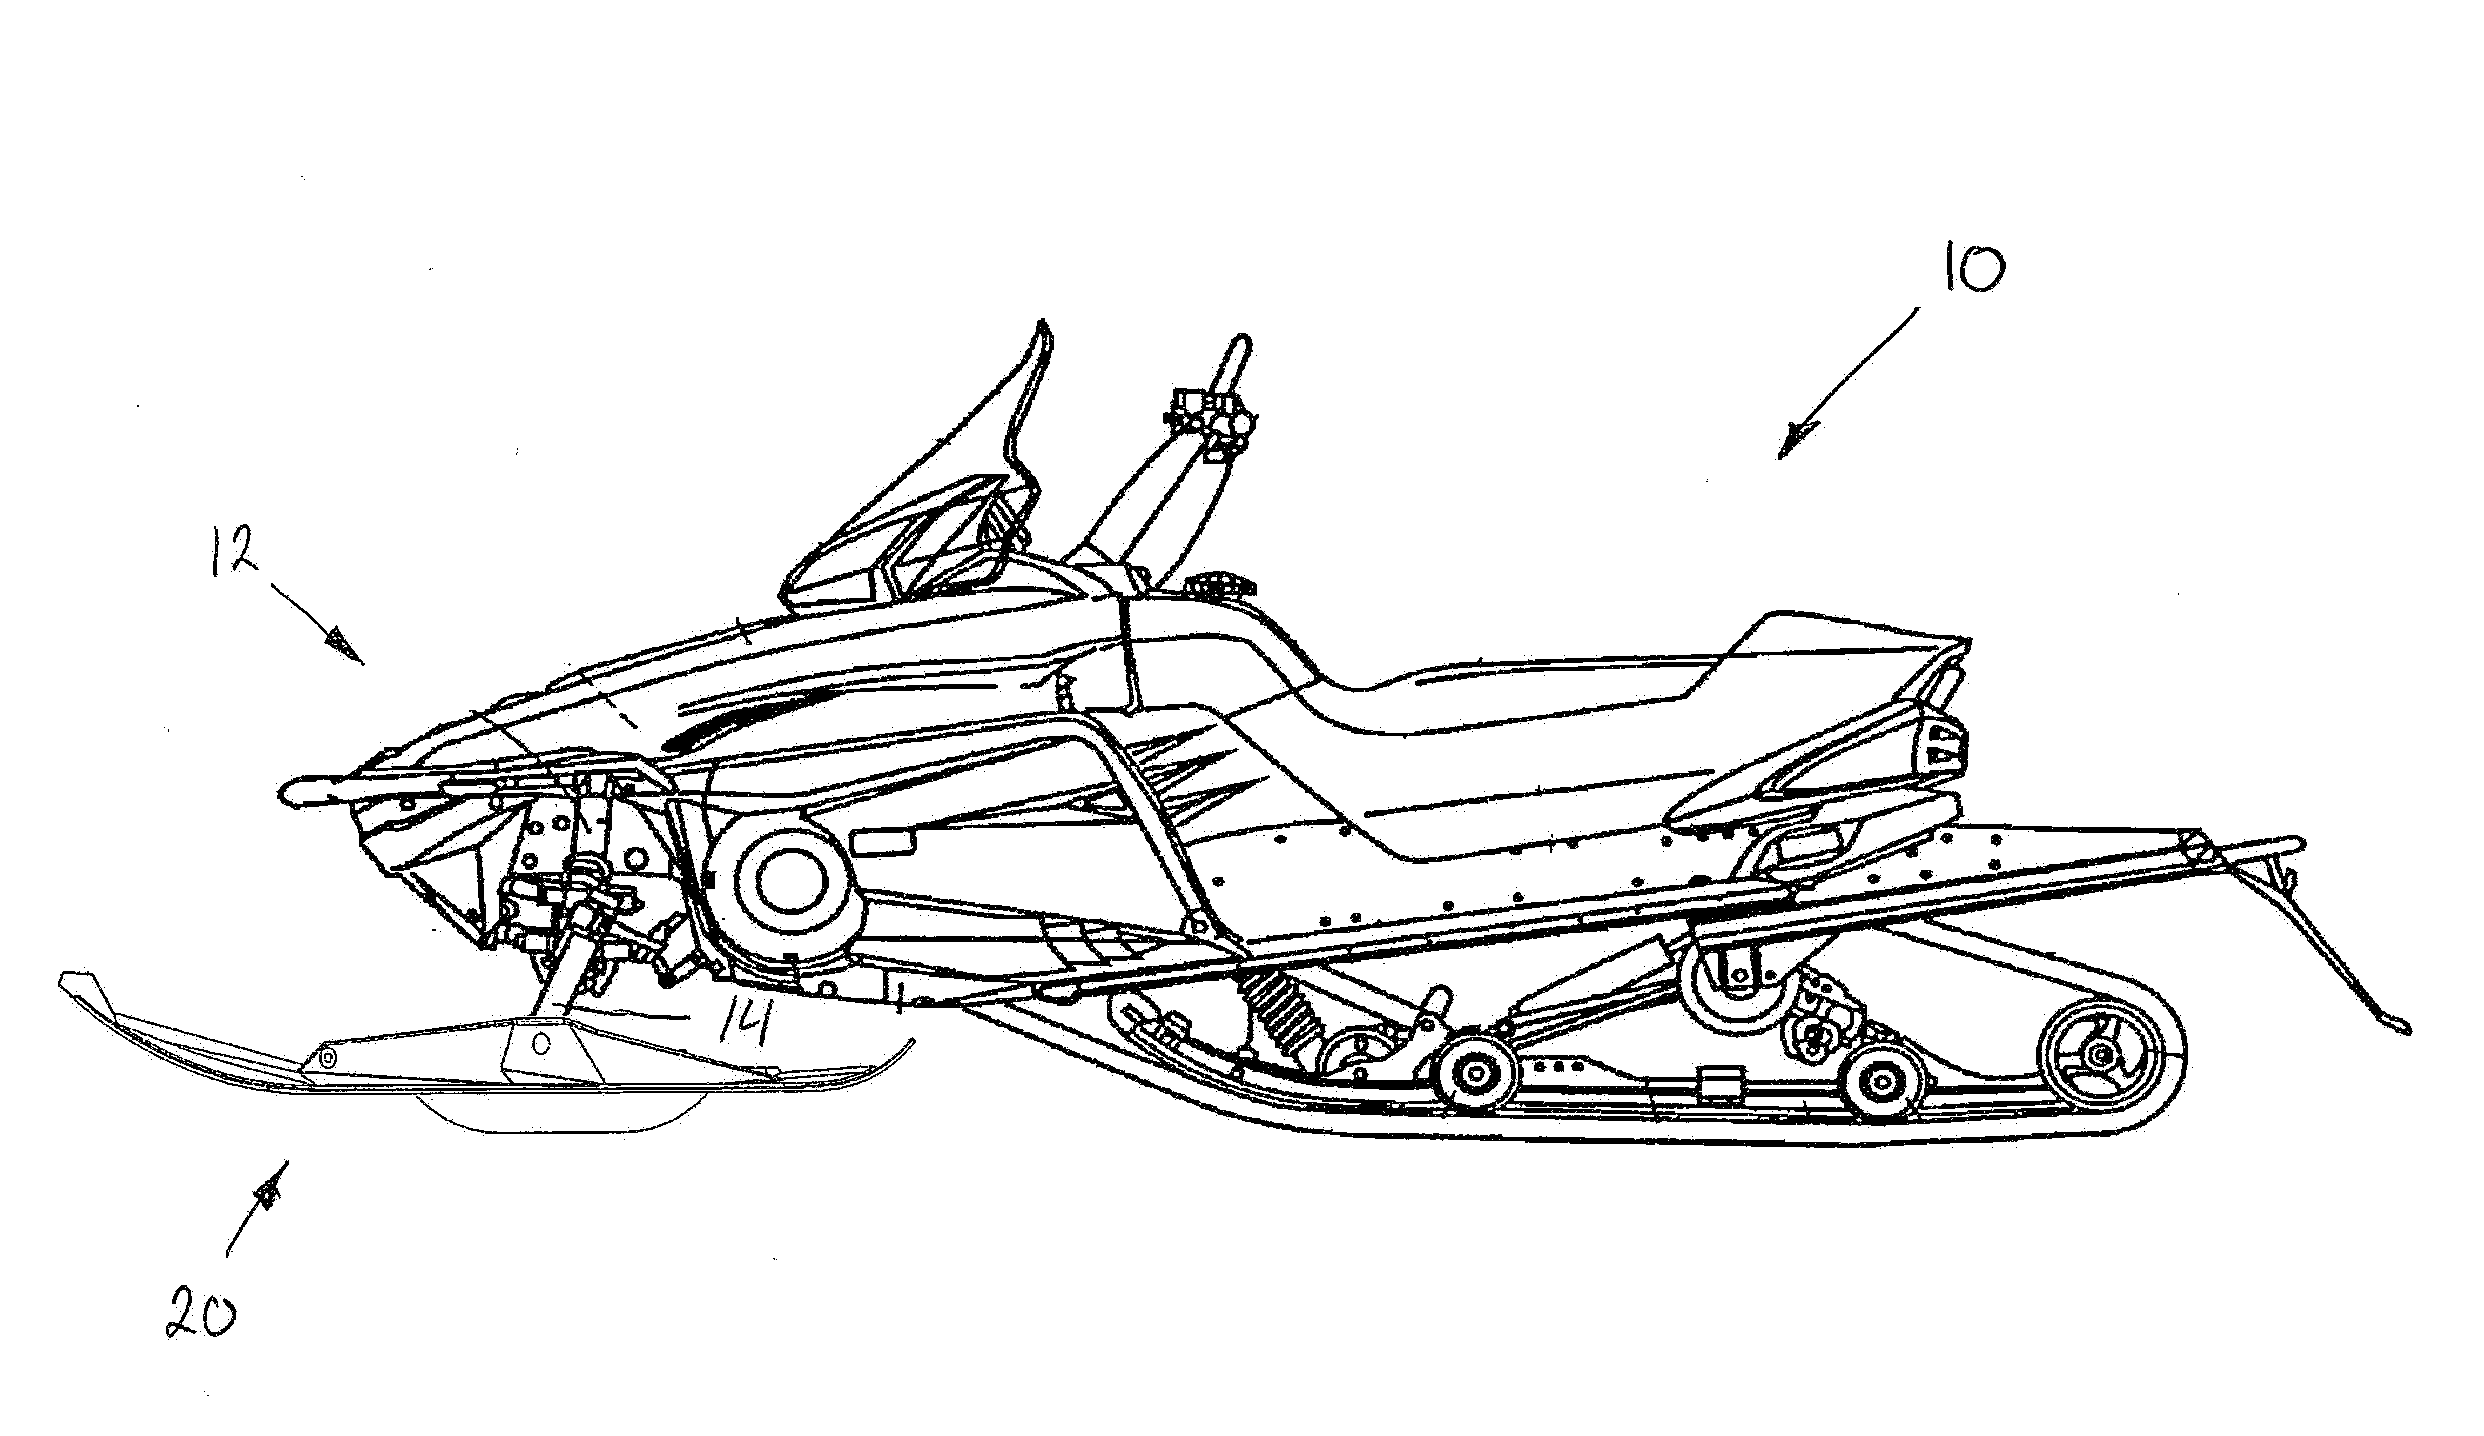 snowmobile coloring pictures snowmobile drawings sketch coloring page pictures snowmobile coloring